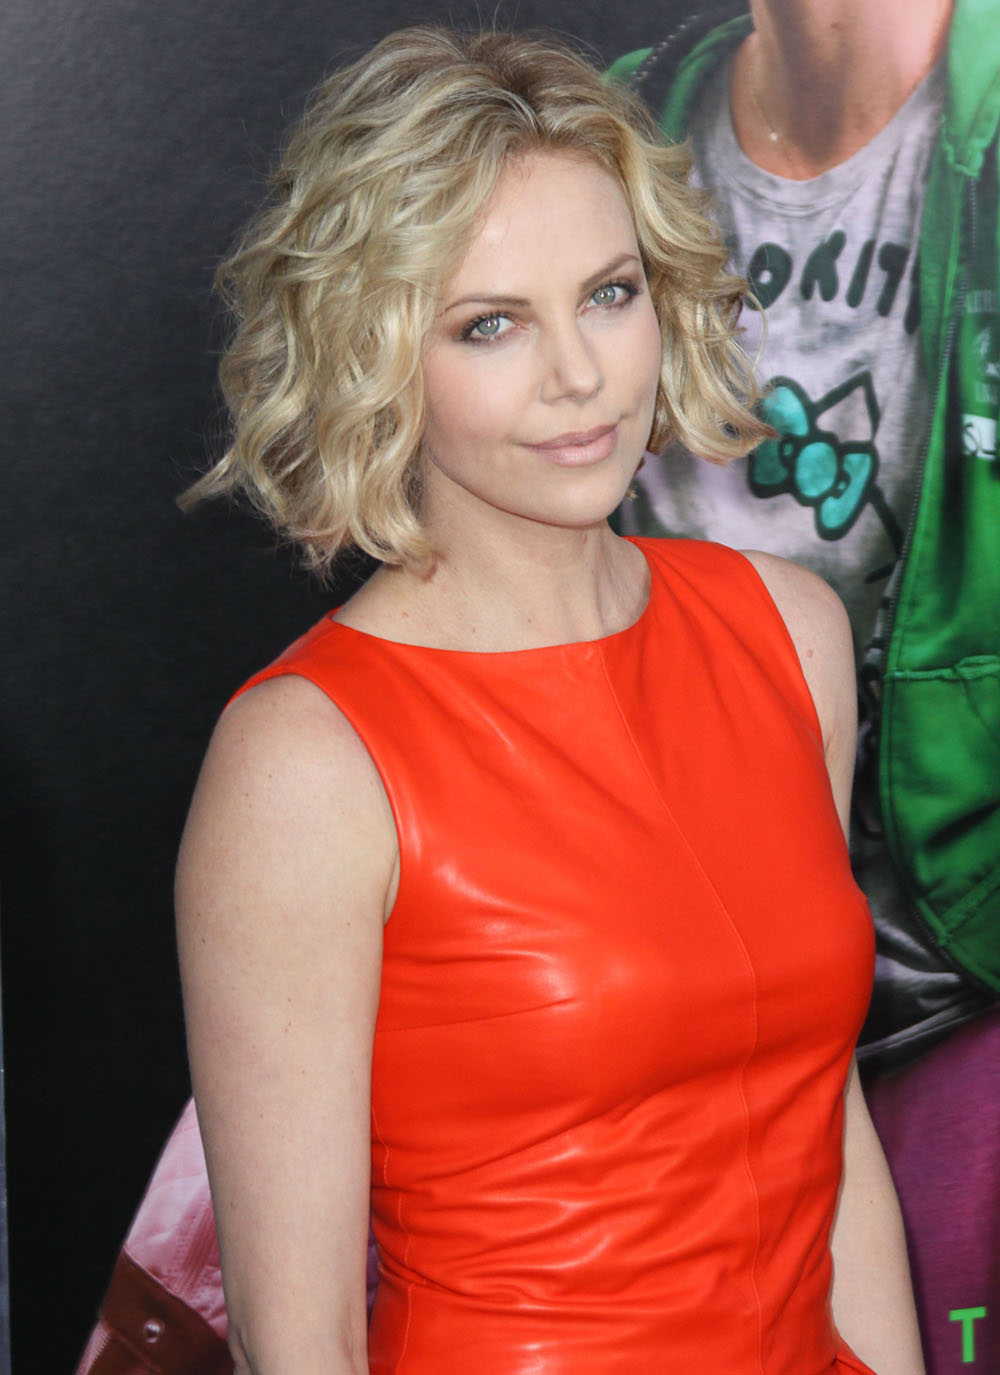 Charlize Theron Proves Her Hotness In Style With An Orange